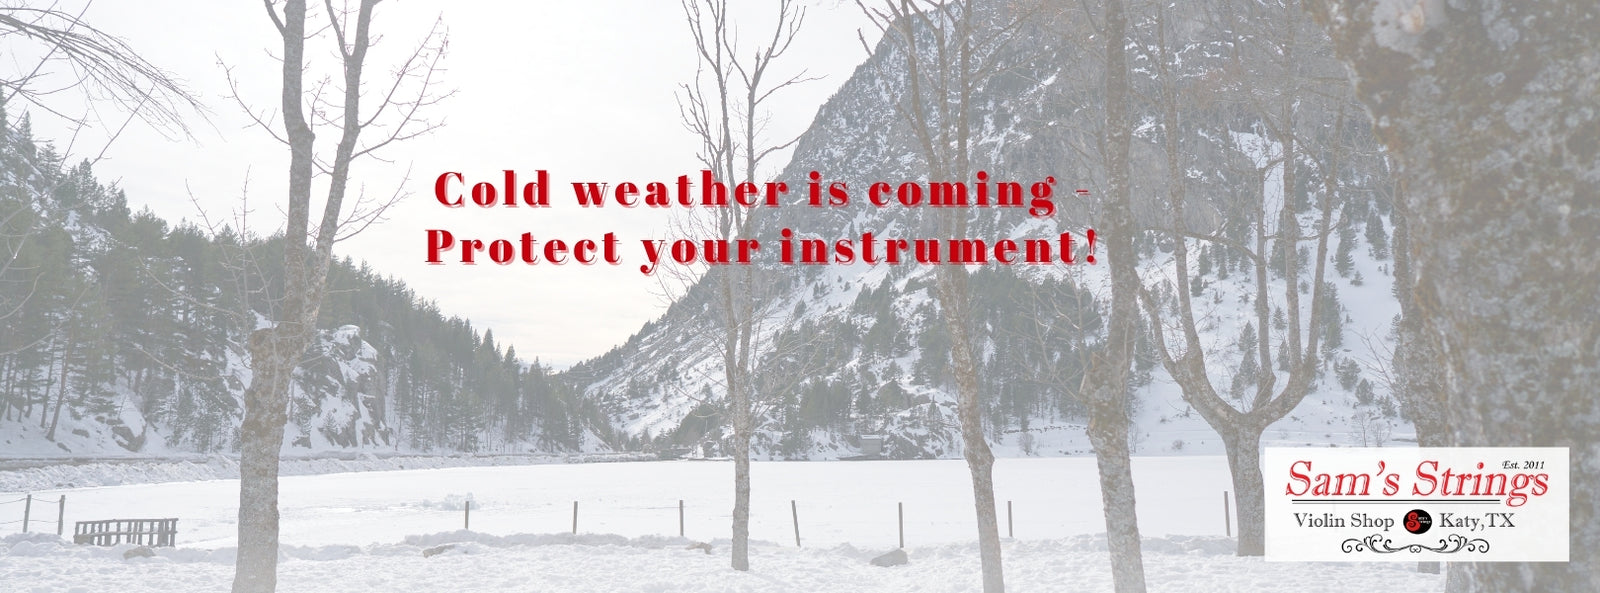 Cold weather is coming - Protect your instrument!